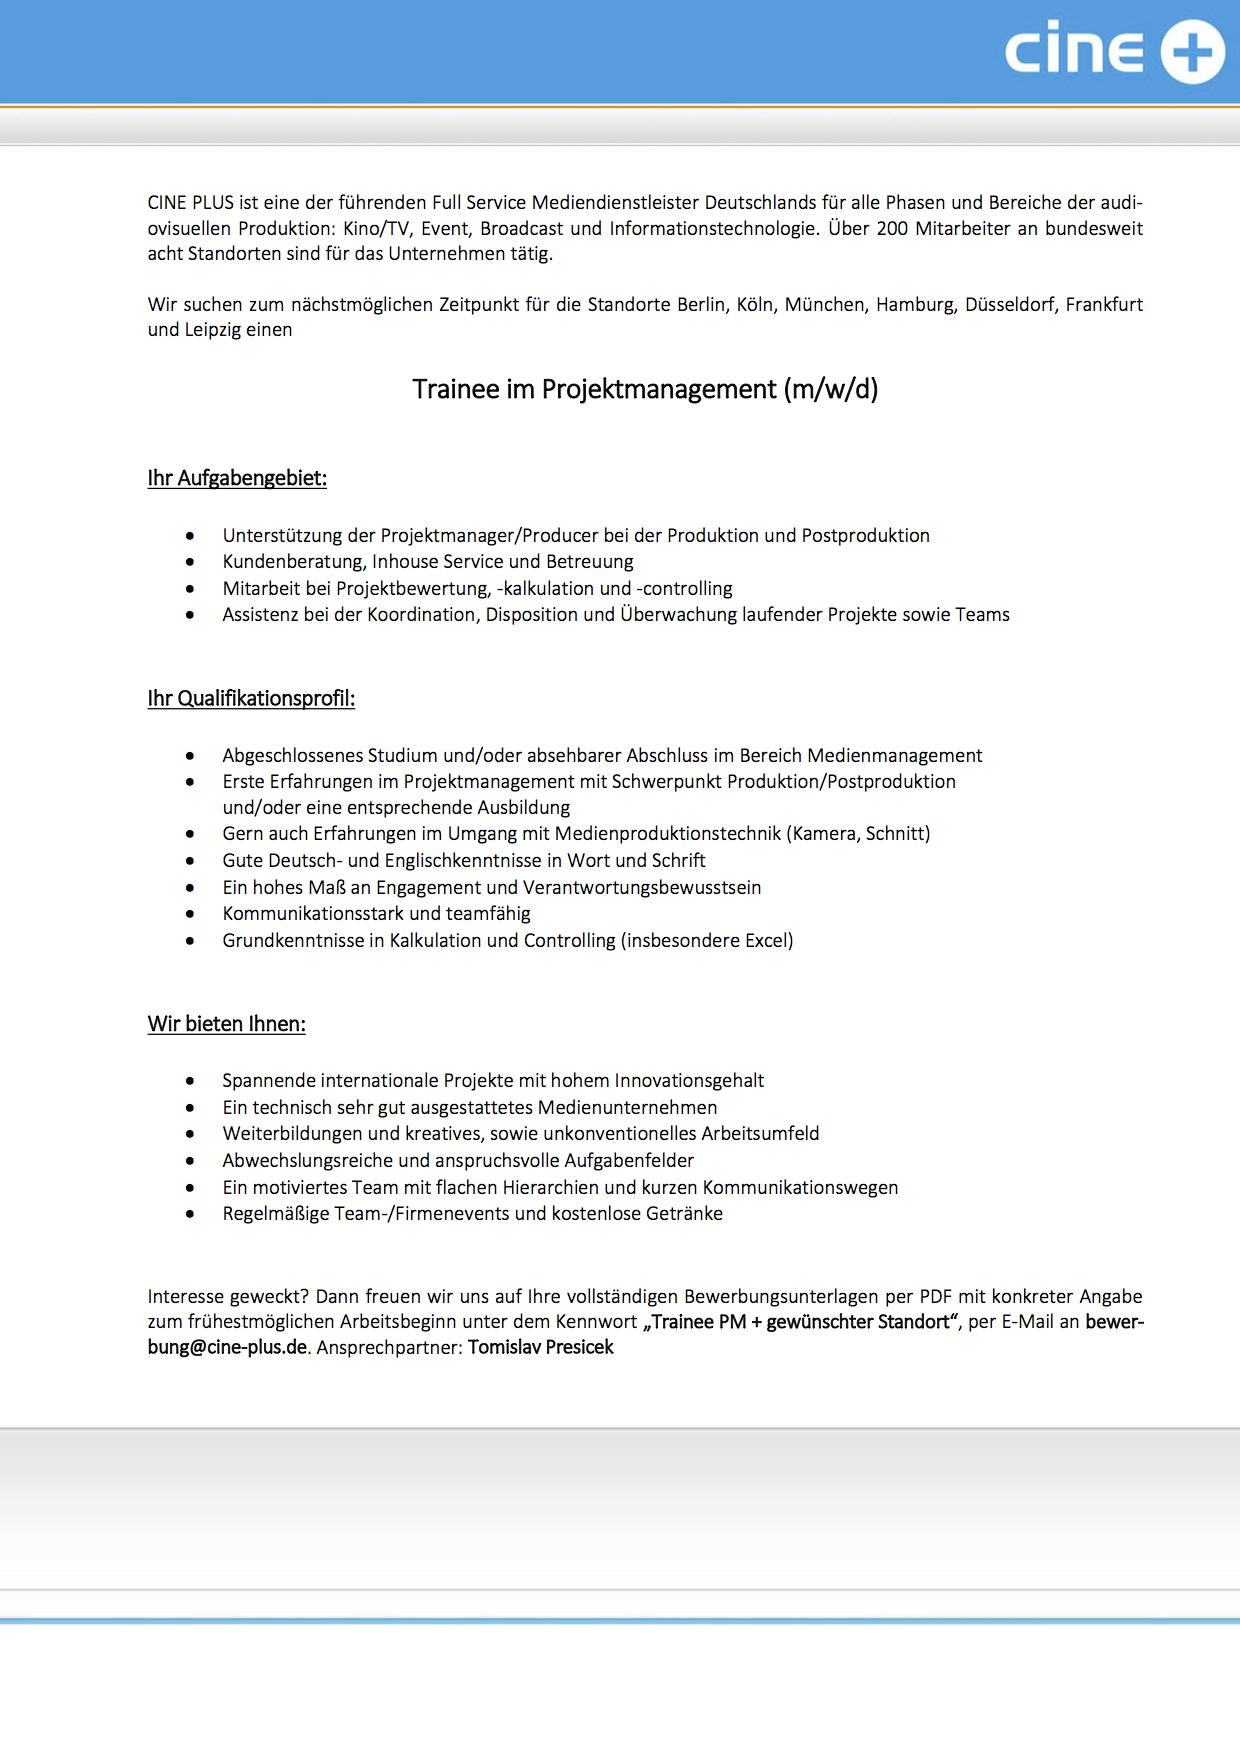 Trainee im Projektmanagement (m/w/d)